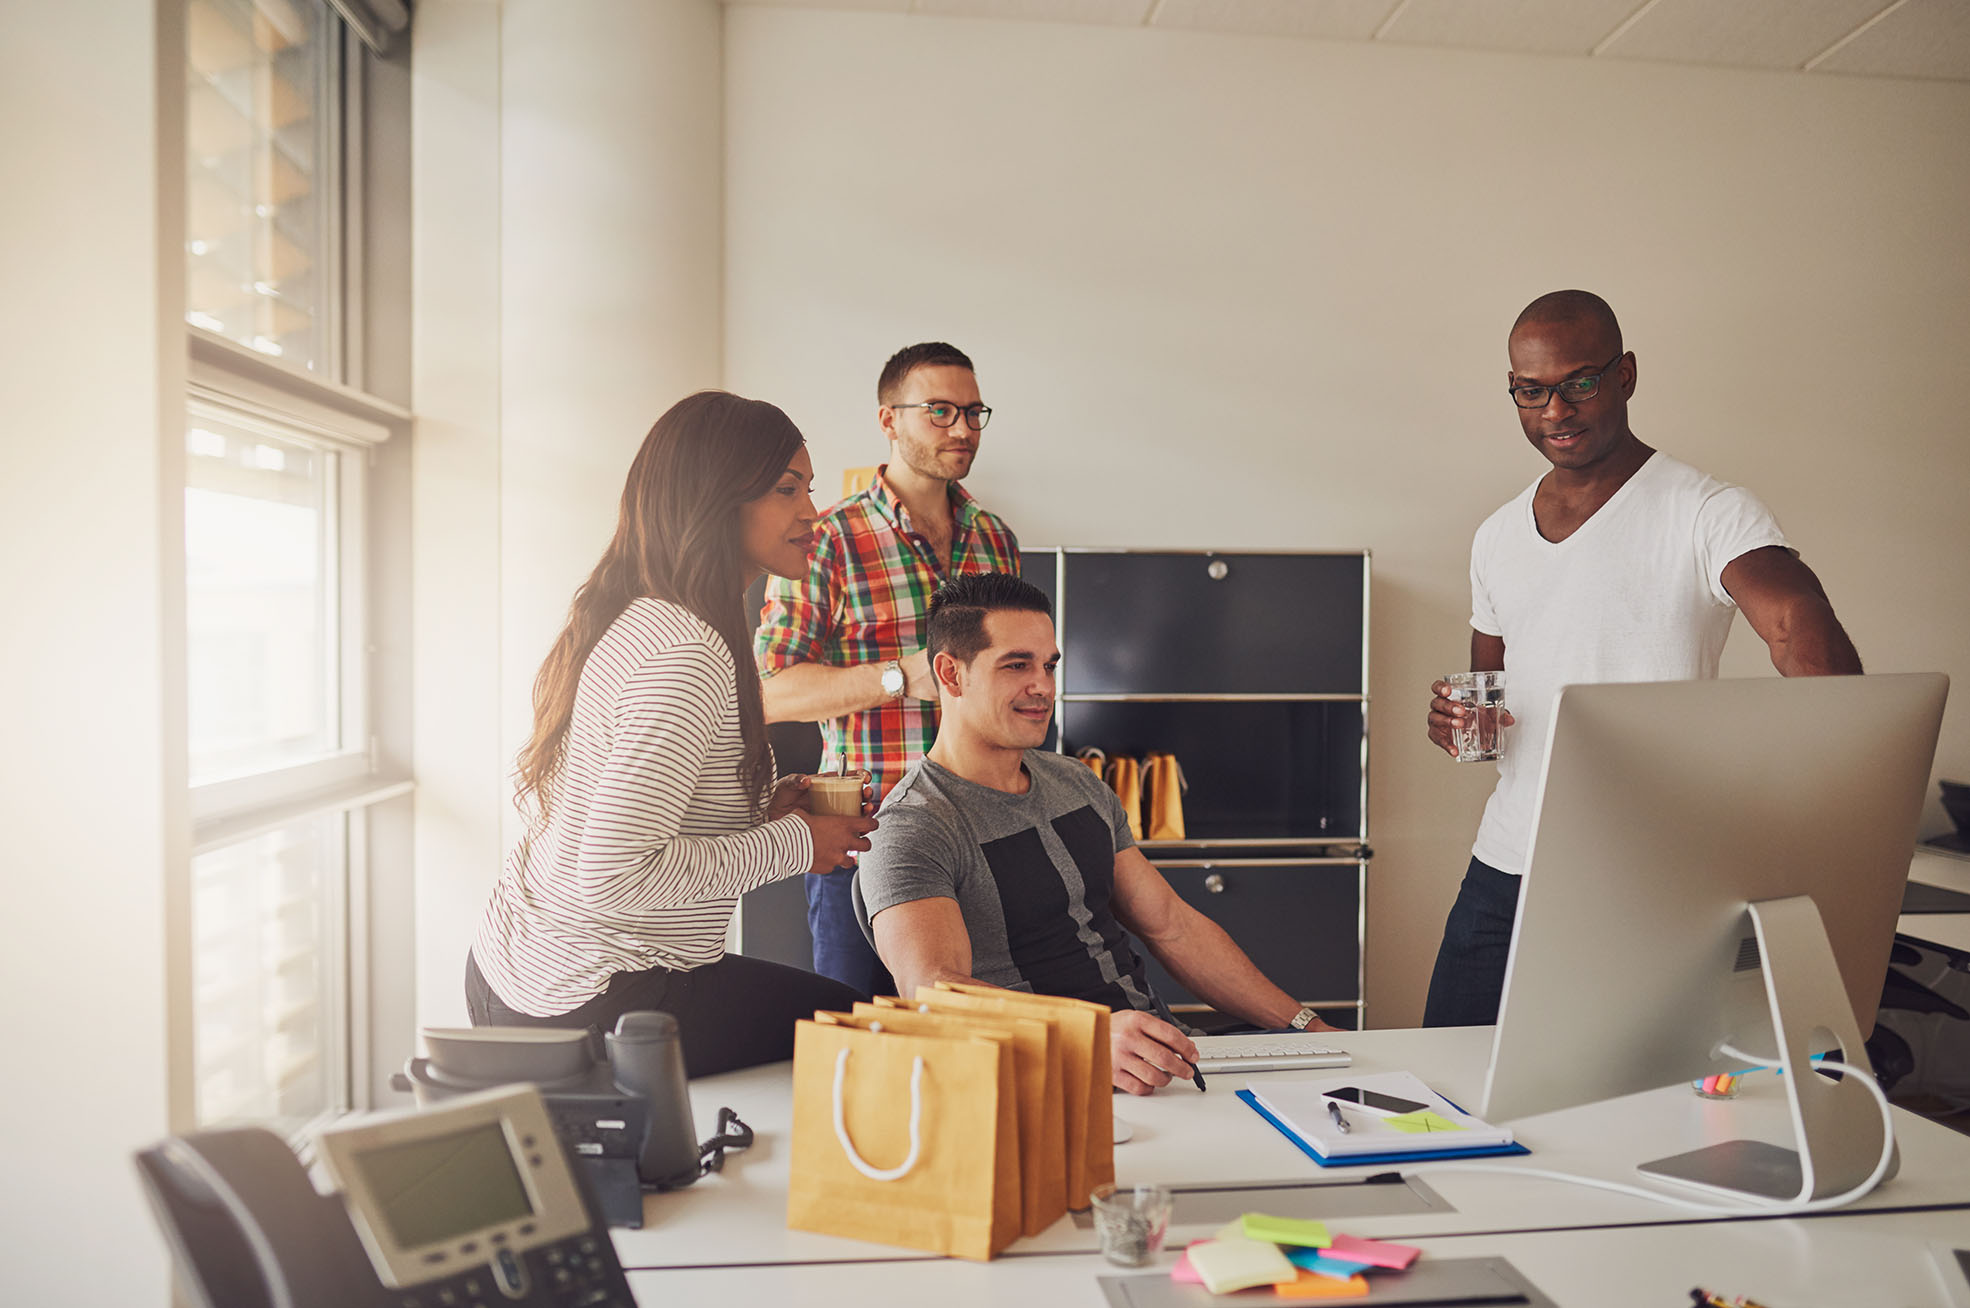 7 Perks Small Business Owners Can Offer Their Employees